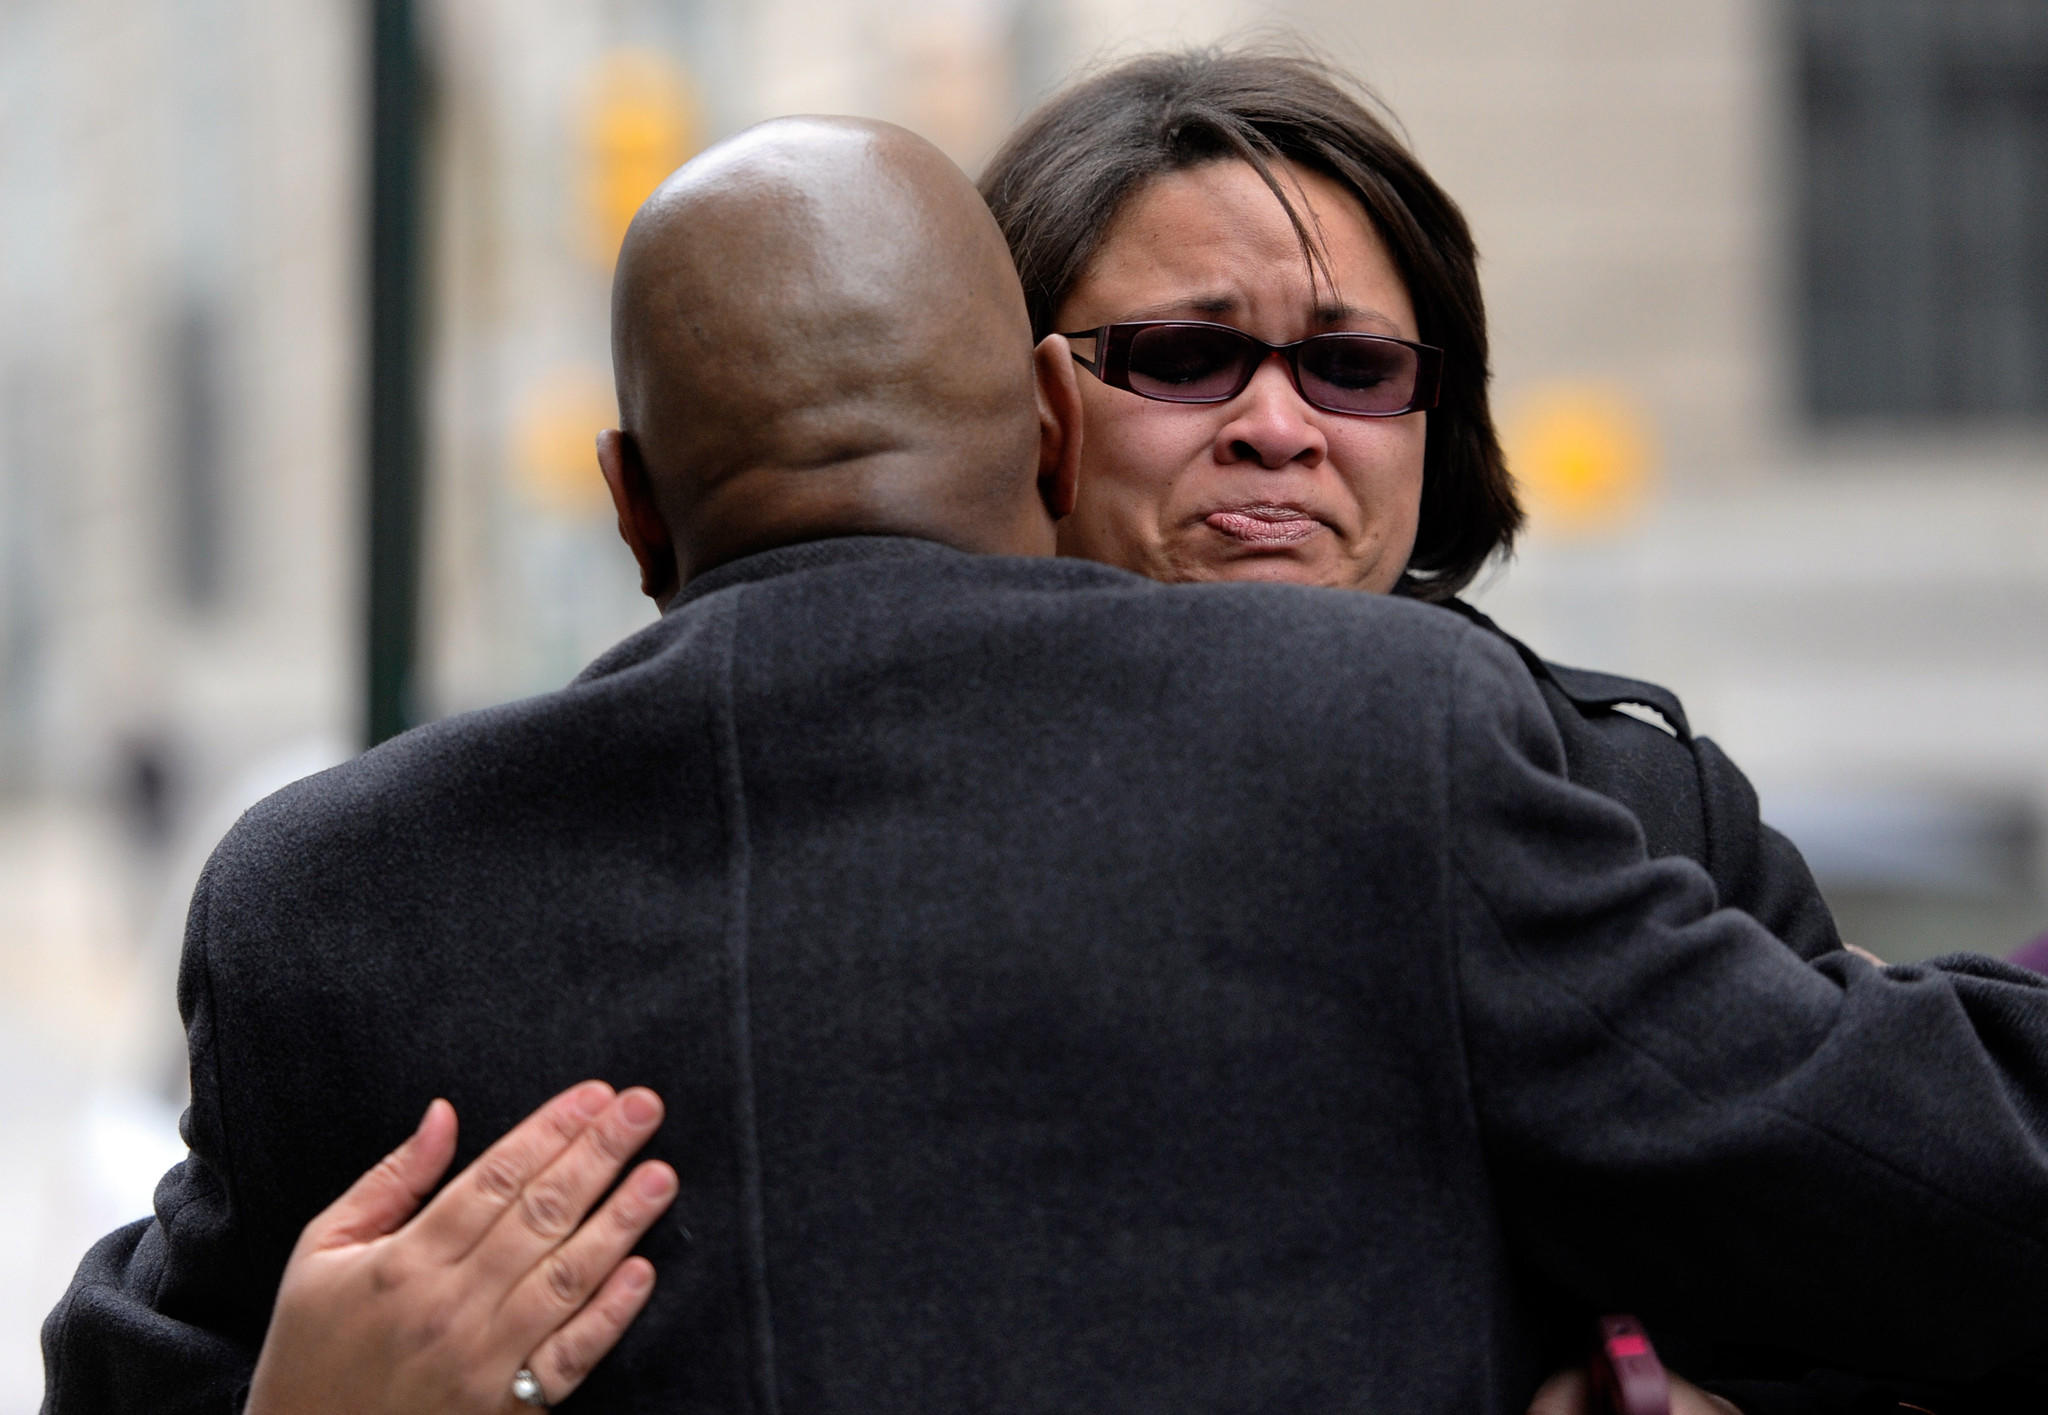 Bonnie Briscoe of Owings Mills, Md., shows her emotions outside court in March after a Baltimore jury found Michael Maurice Johnson guilty of second-degree murder in the killing of Briscoe's neice, Phylicia Barnes.